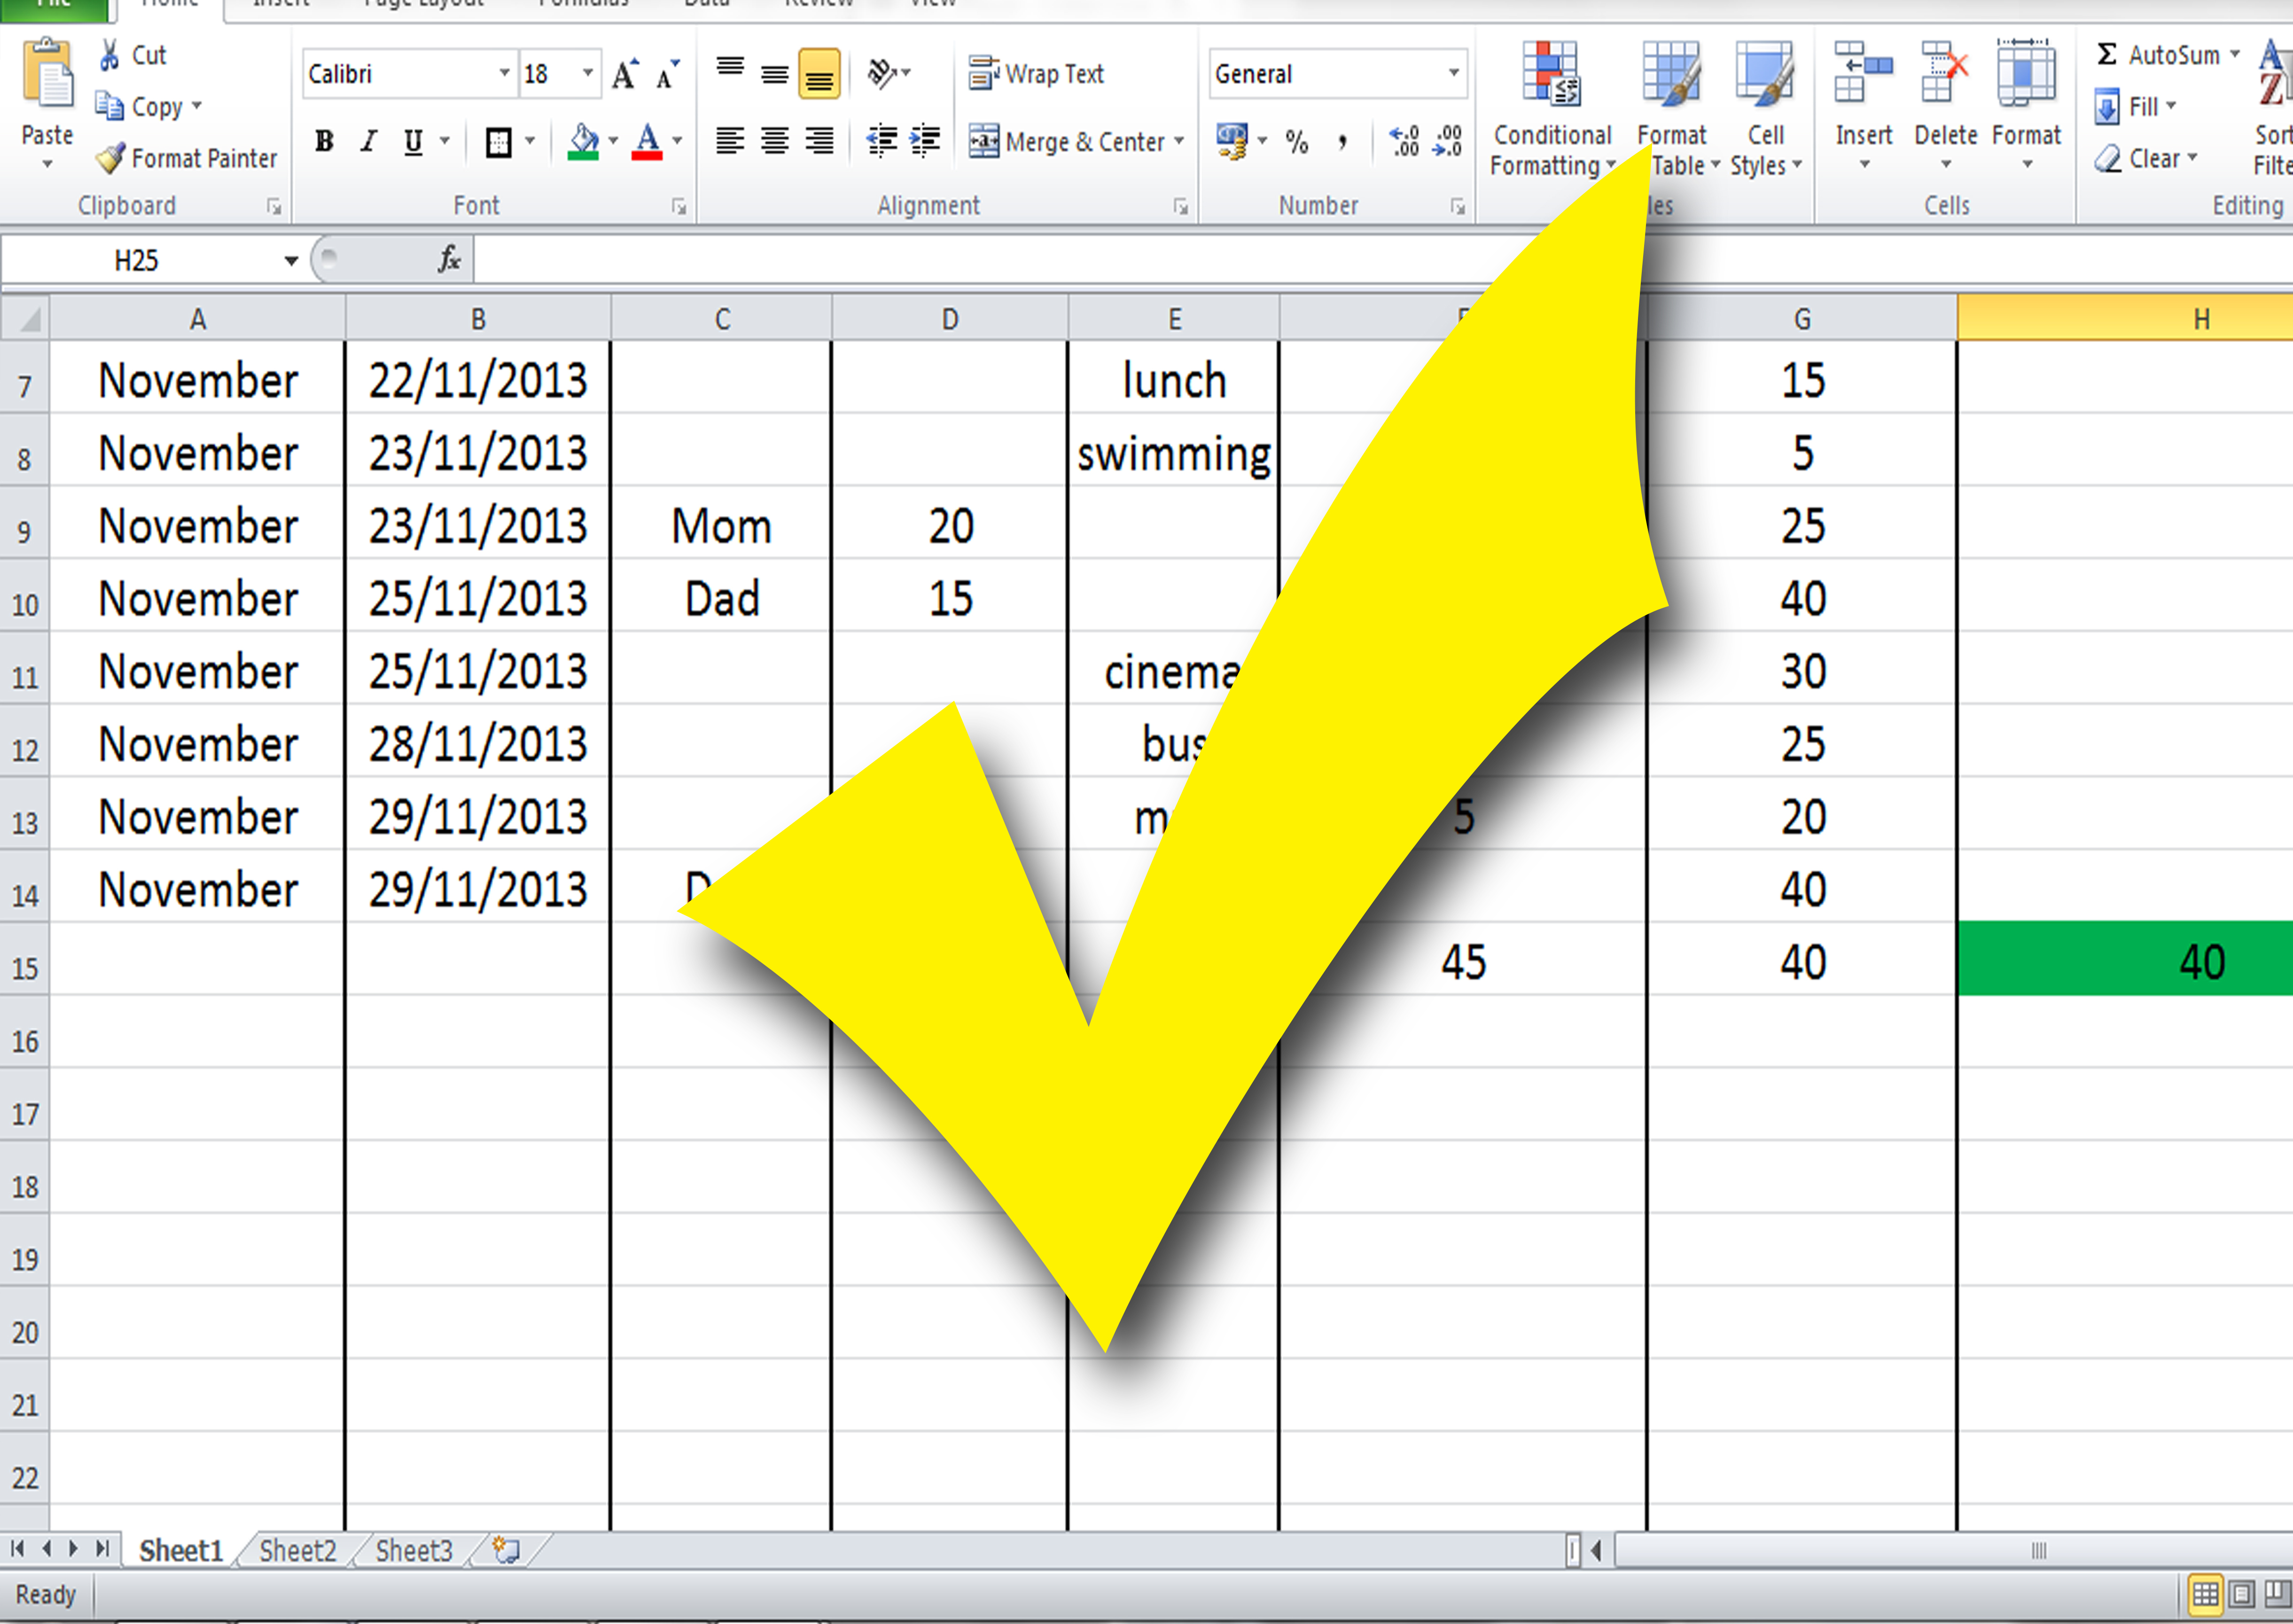 How Do I Make A Budget Spreadsheet On Excel Regarding How To Build A Budget Spreadsheet Teenagers: 13 Steps